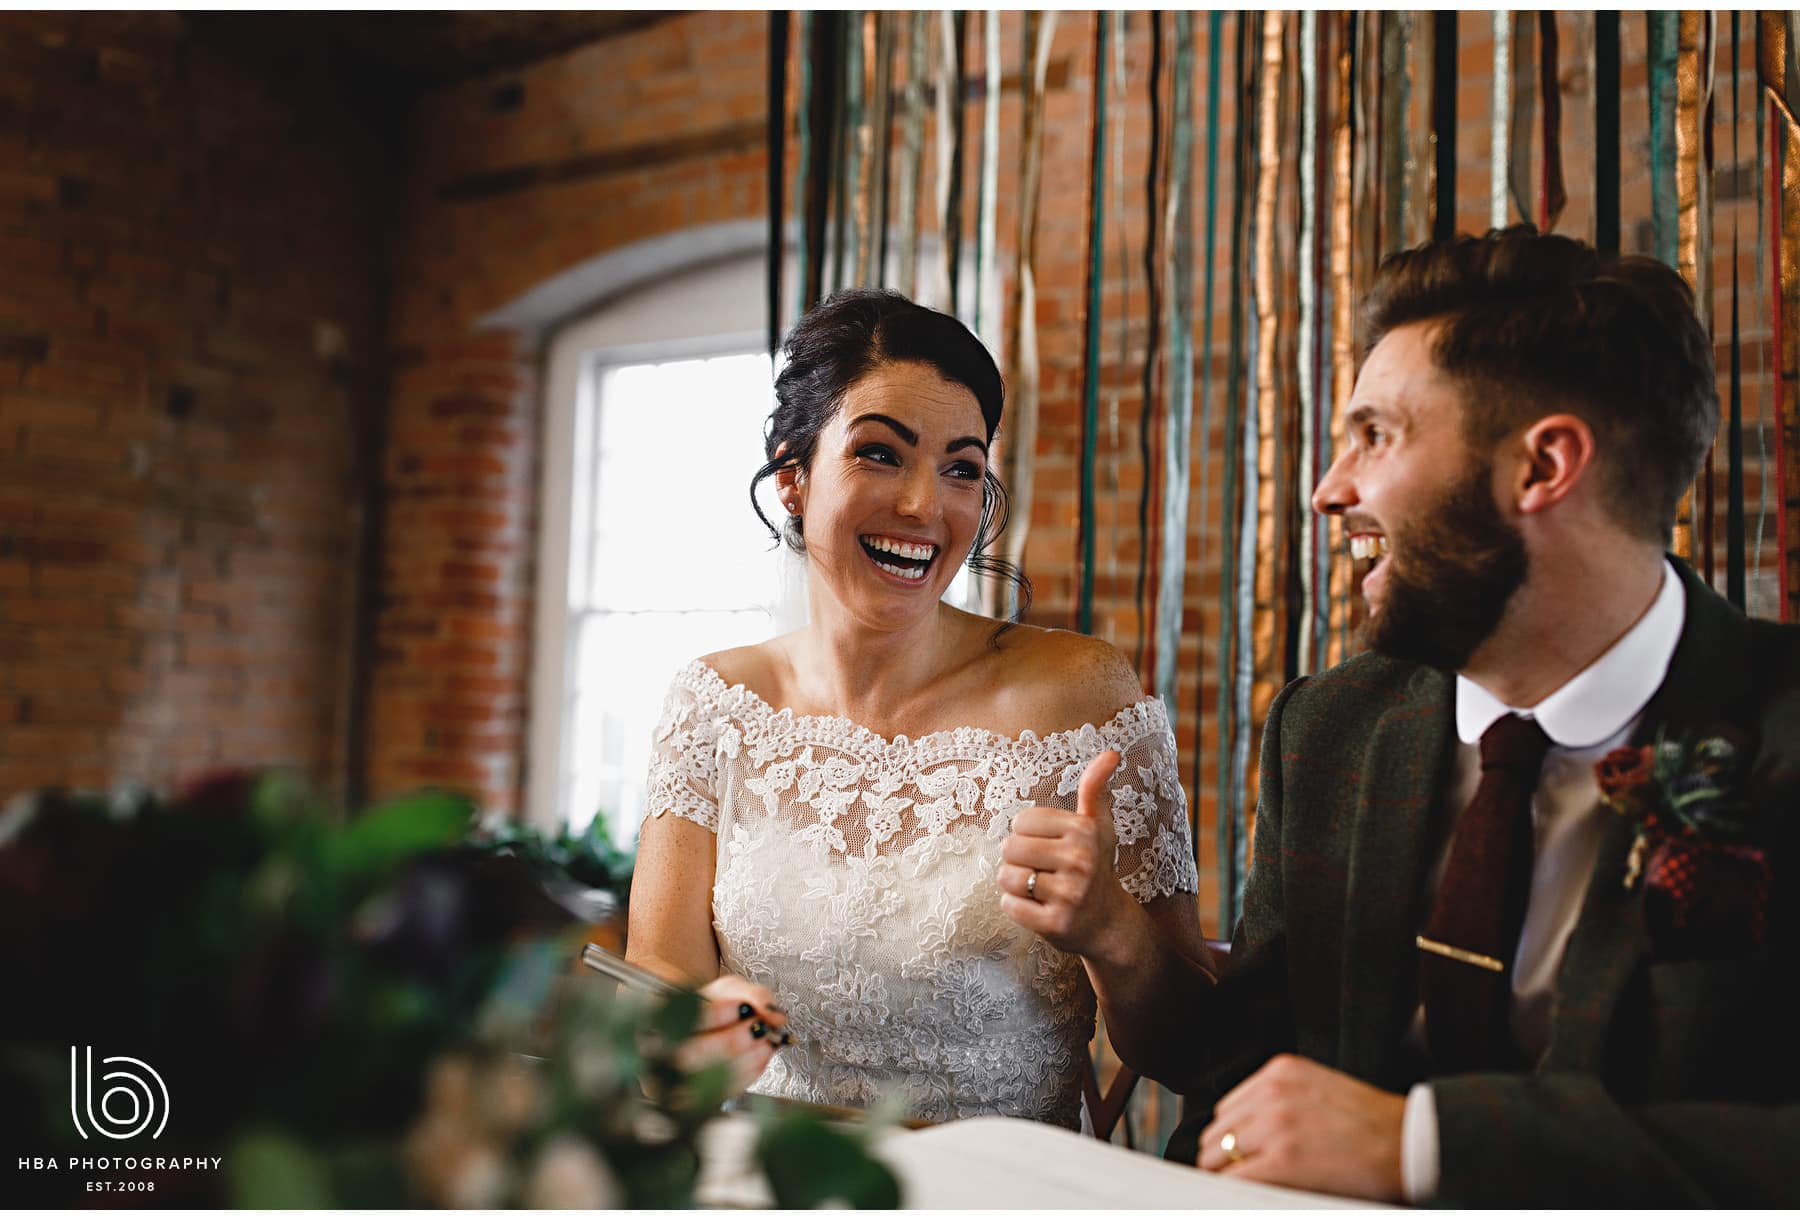 the bride and groom laughing